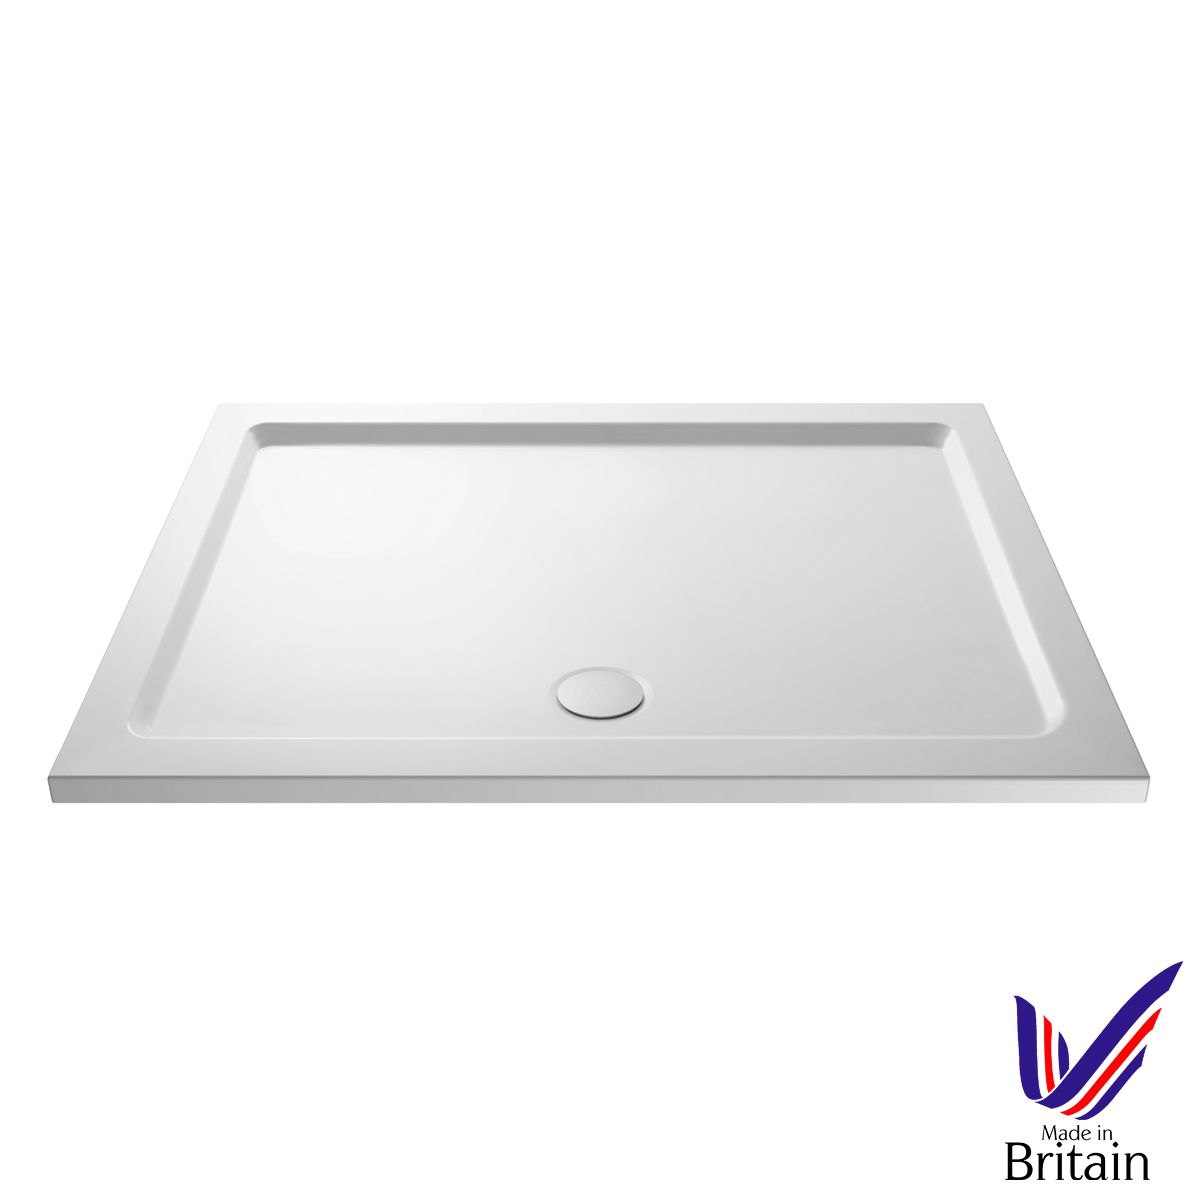 1500 x 800 Shower Tray Rectangular Low Profile by Pearlstone